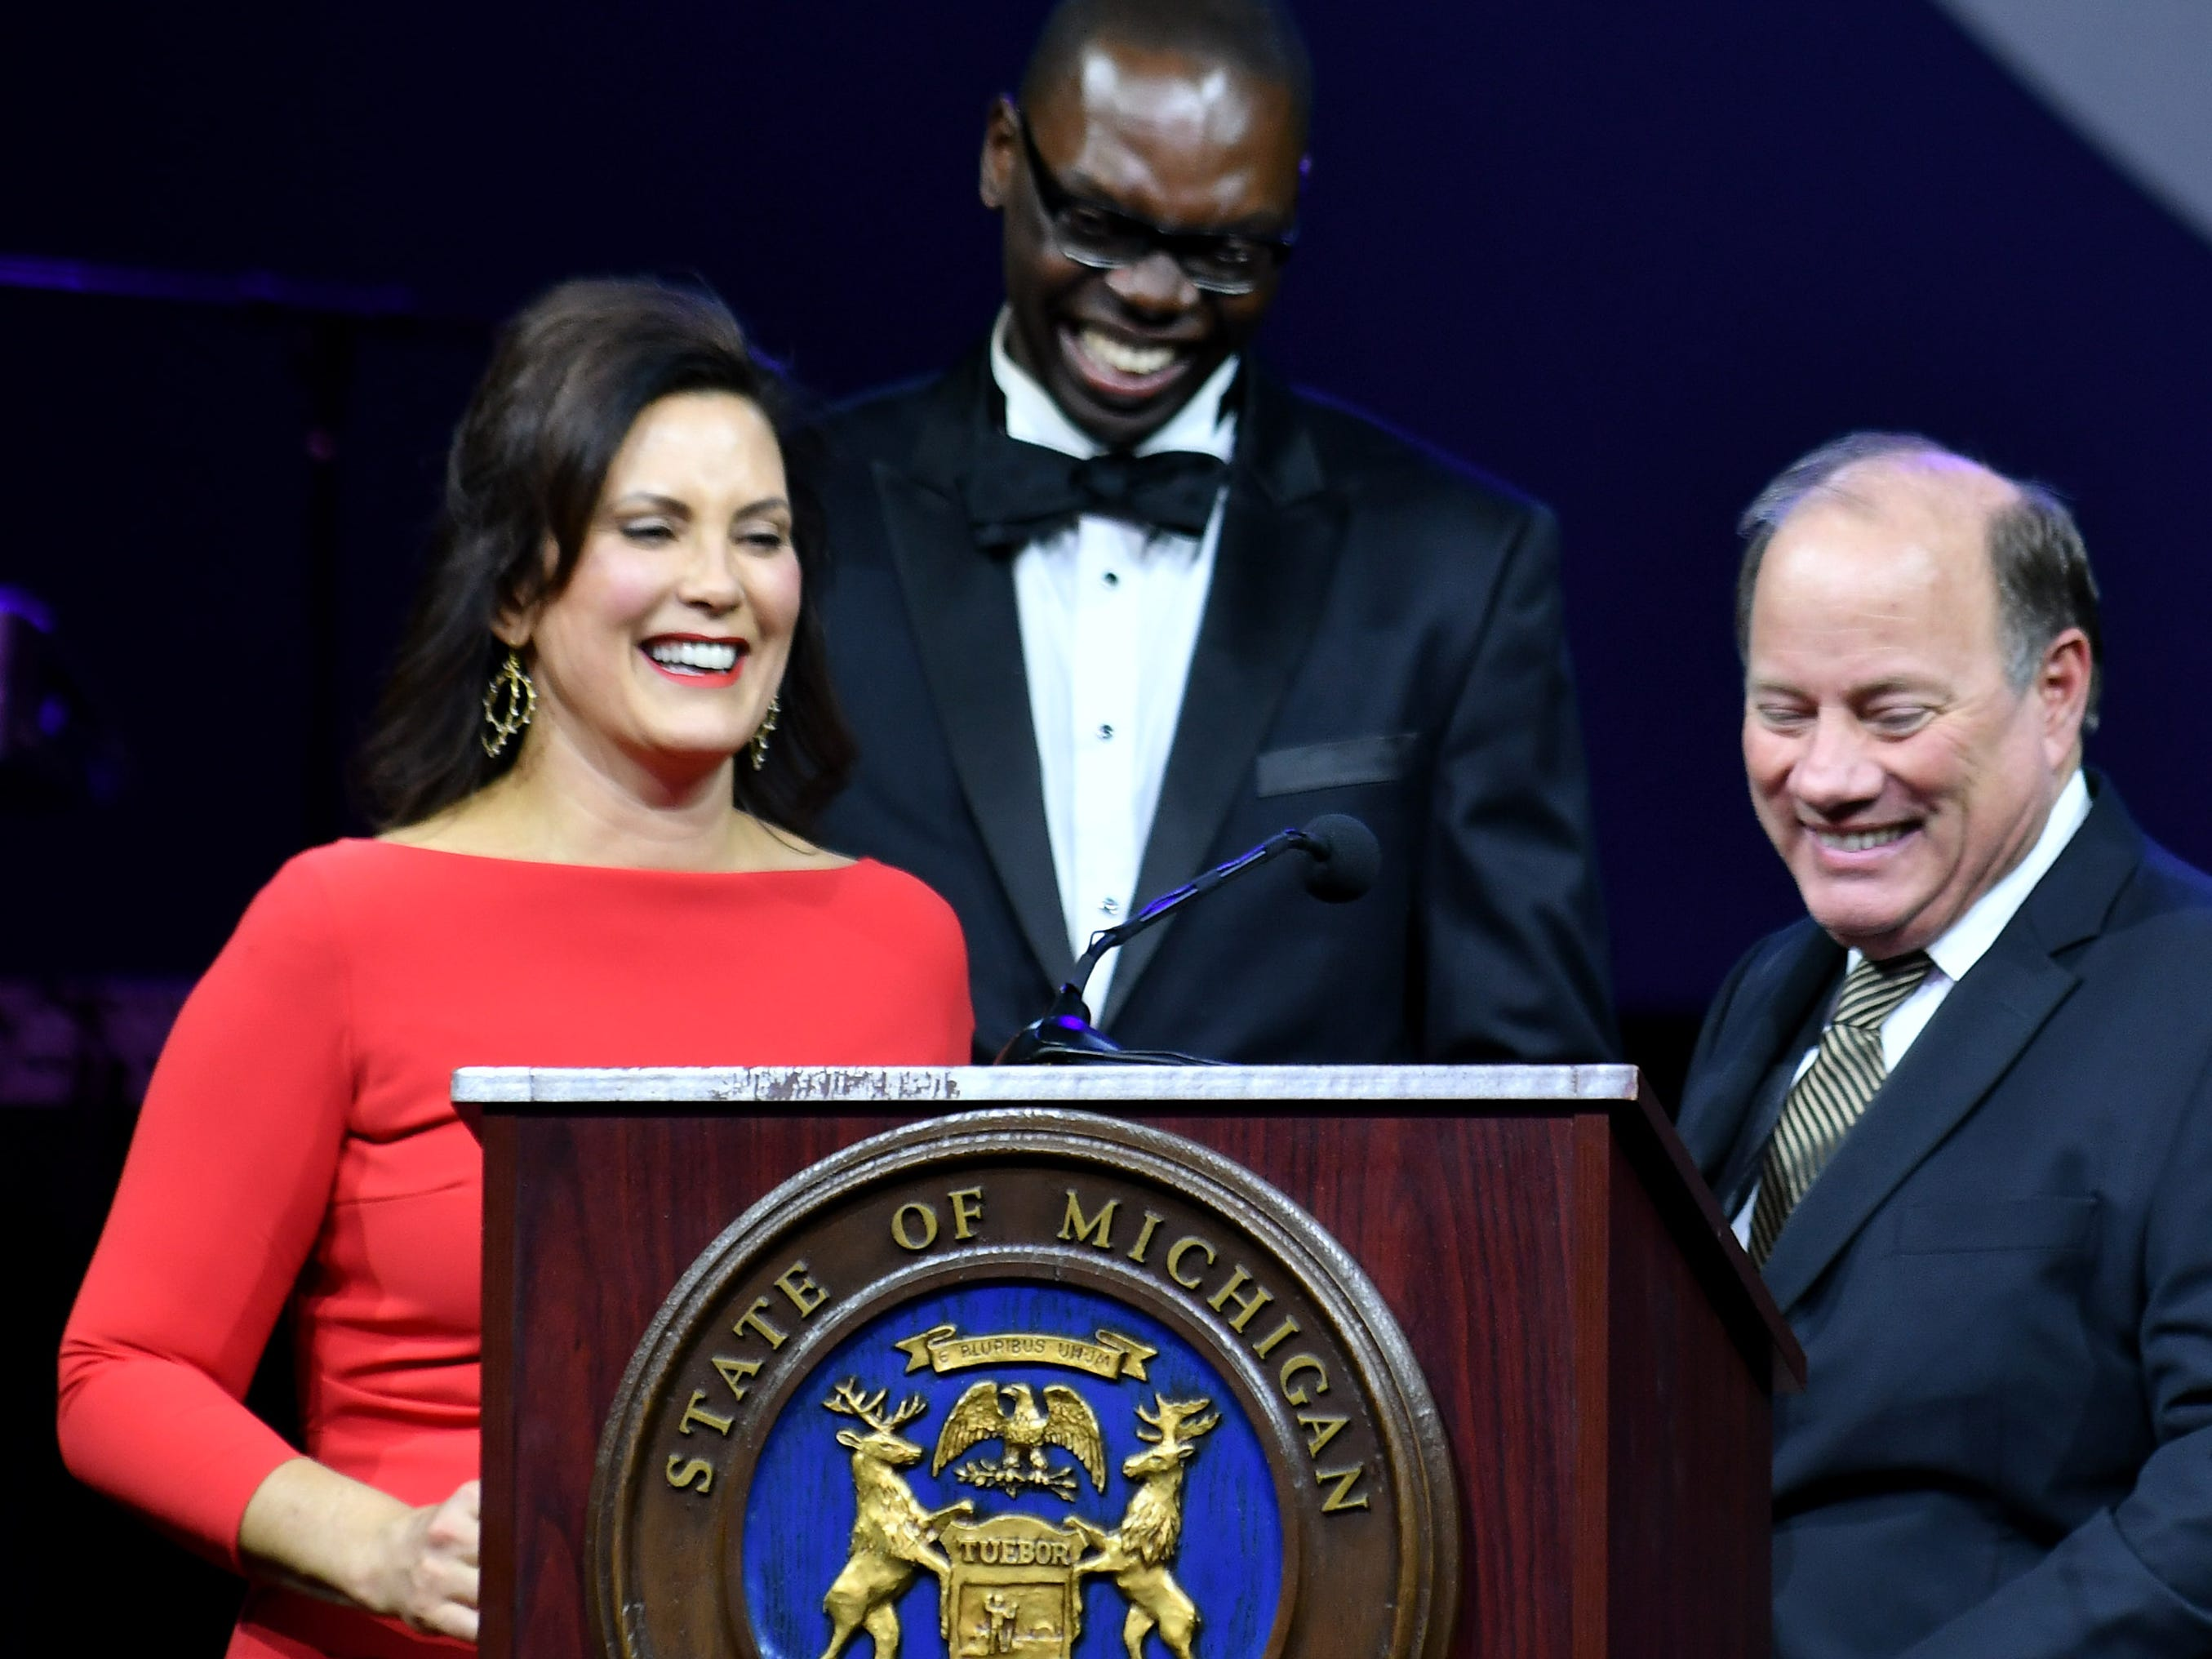 Detroit Mayor Mike Duggan, right, introduces Gov. Gretchen Whitmer and Lt. Gov. Garlin Gilchrist II  at the inauguration celebration.